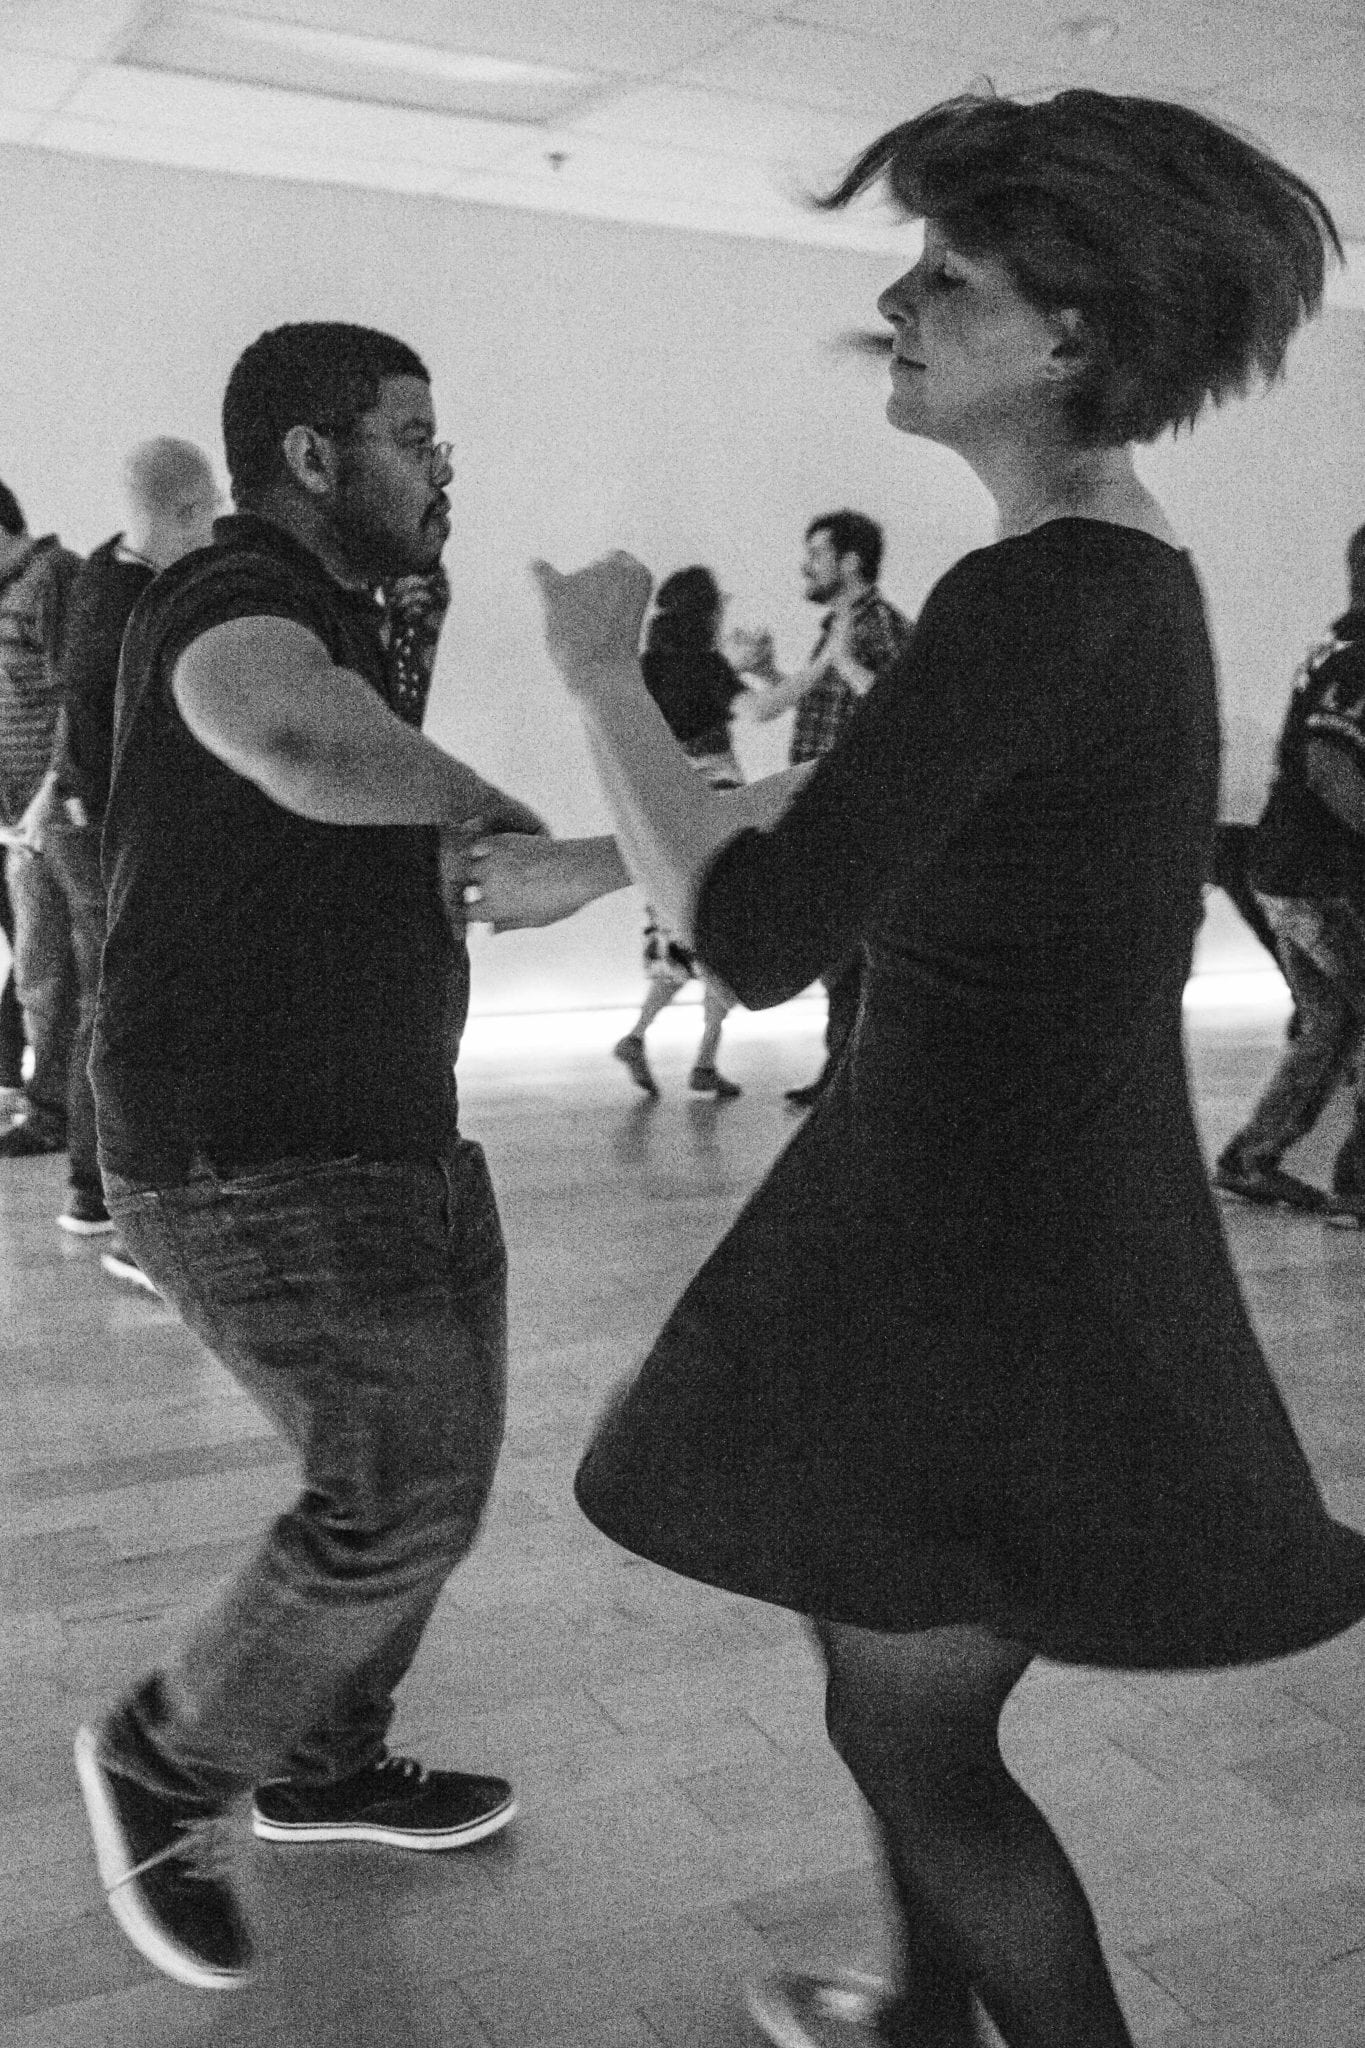 The anatomy of dance- Man and woman dancing - Photo Story - Cleverish